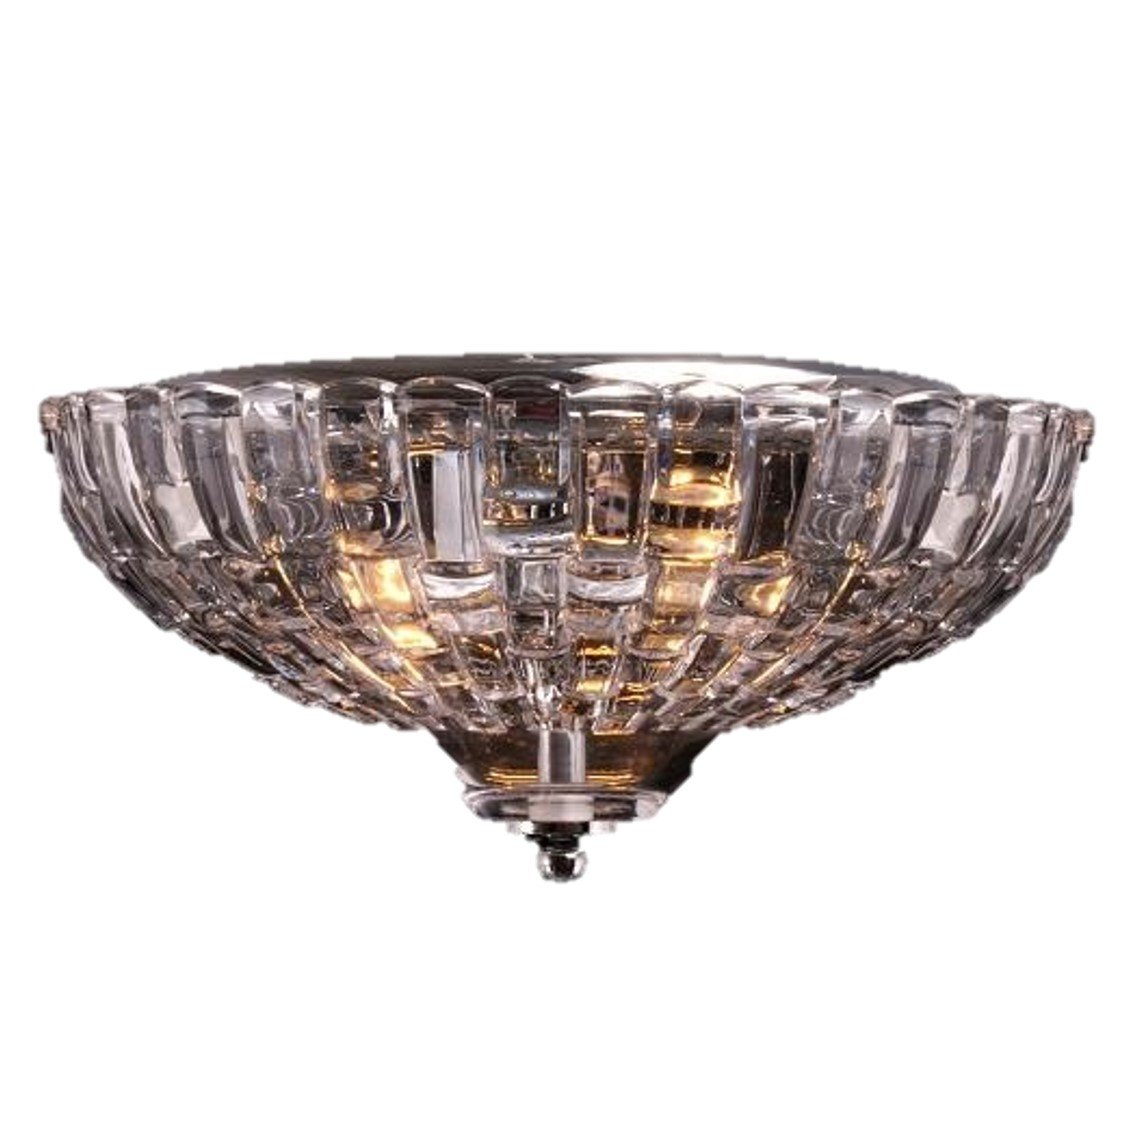 -TTSC630168-30CM-Pyramid Crystal/ Brown Ceiling